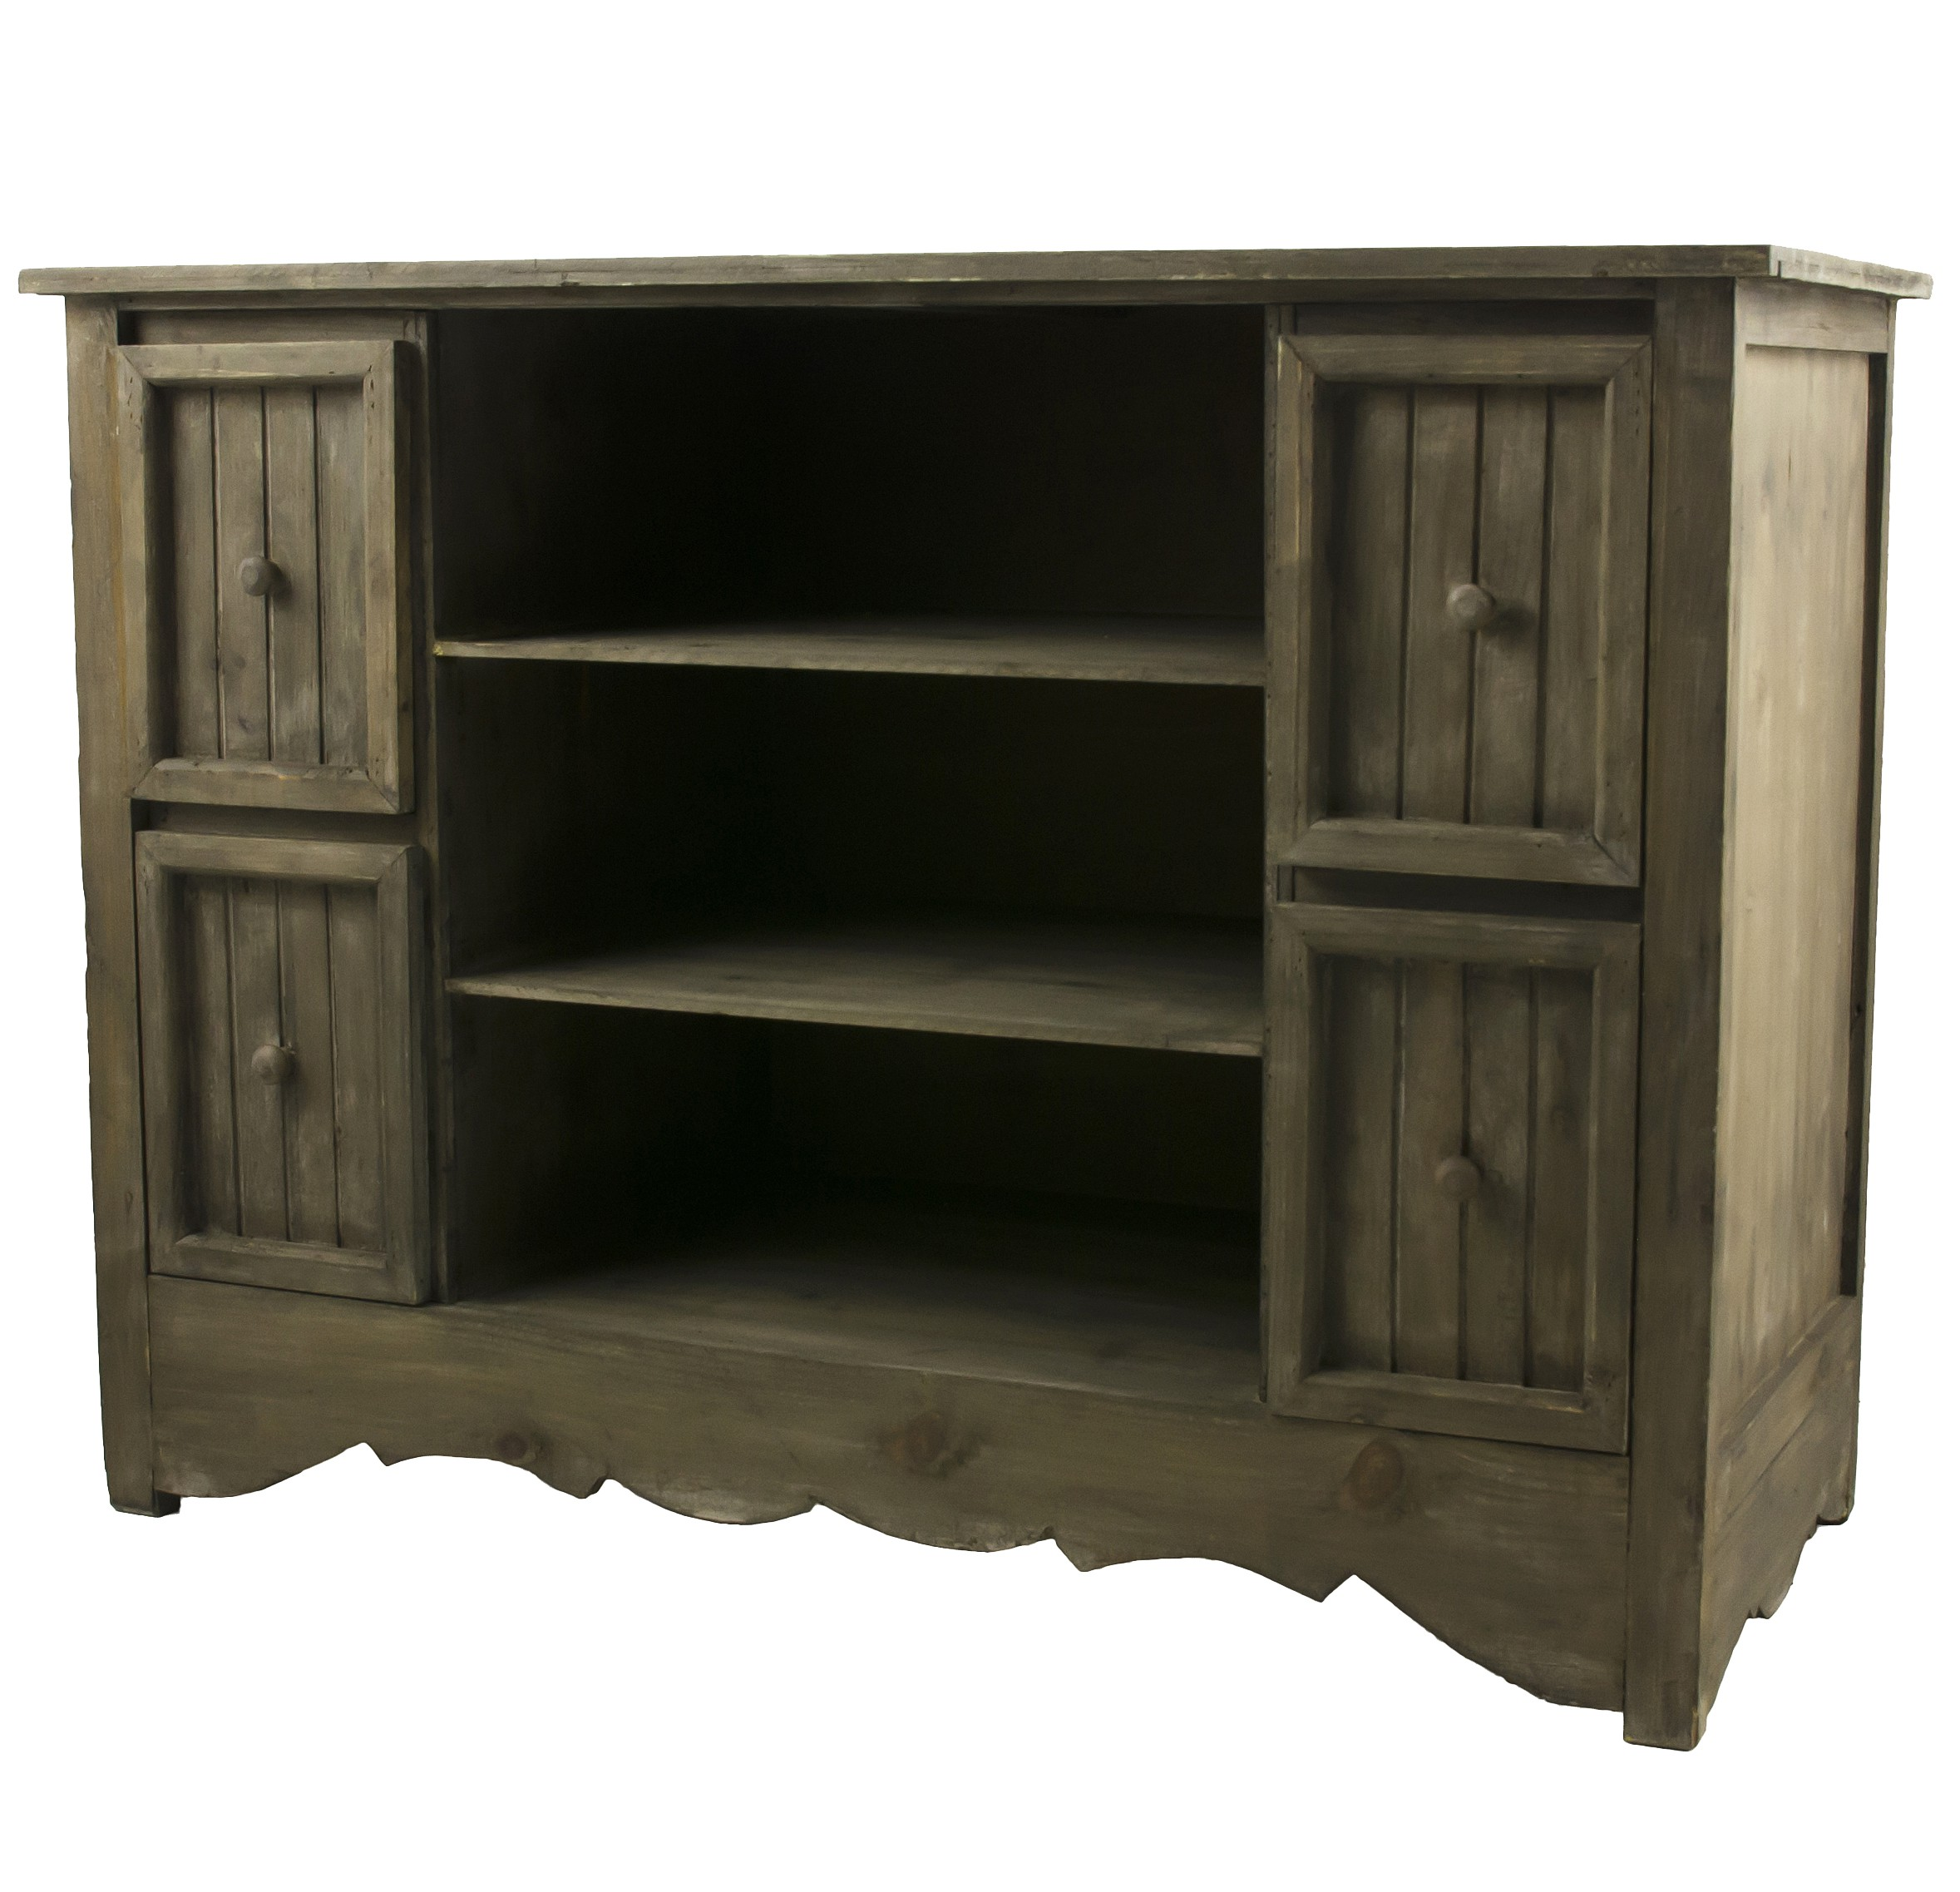 meuble tv chevalet meuble cholet meuble tv meuble a tiroirs en bois table a dessin en bois. Black Bedroom Furniture Sets. Home Design Ideas